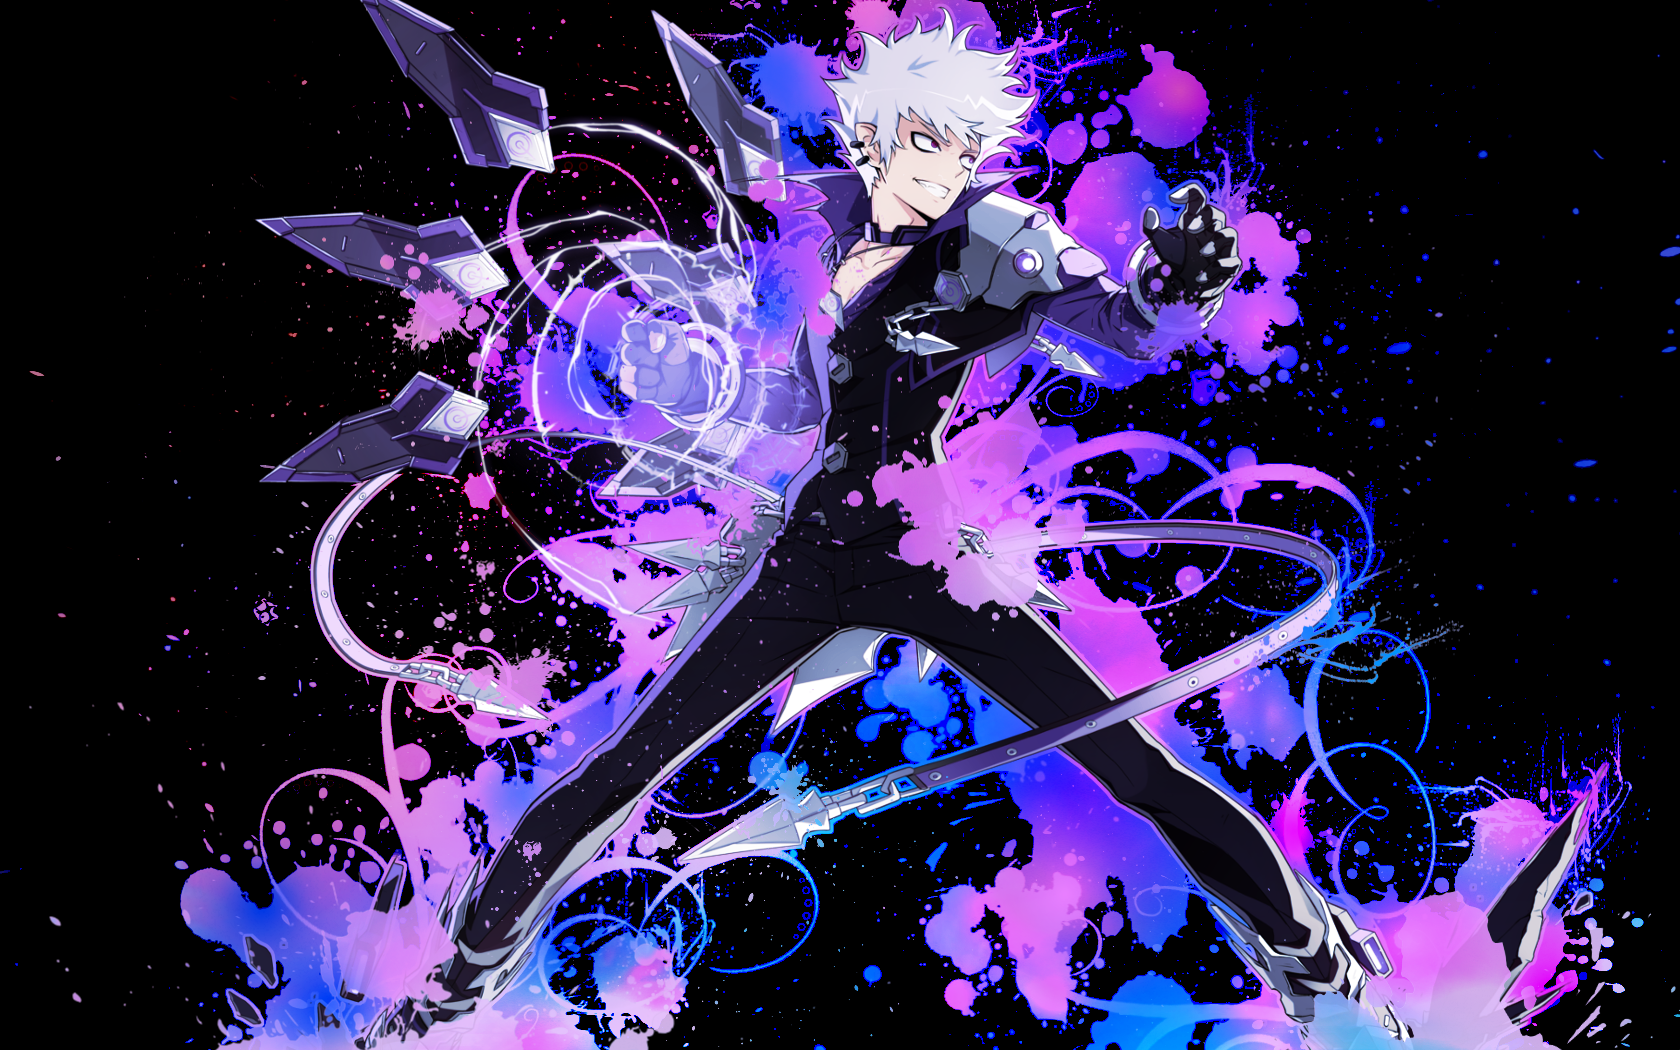 Wallpaper lunatic psyker elsword by luckyshiney on deviantart wallpaper lunatic psyker elsword by luckyshiney voltagebd Image collections